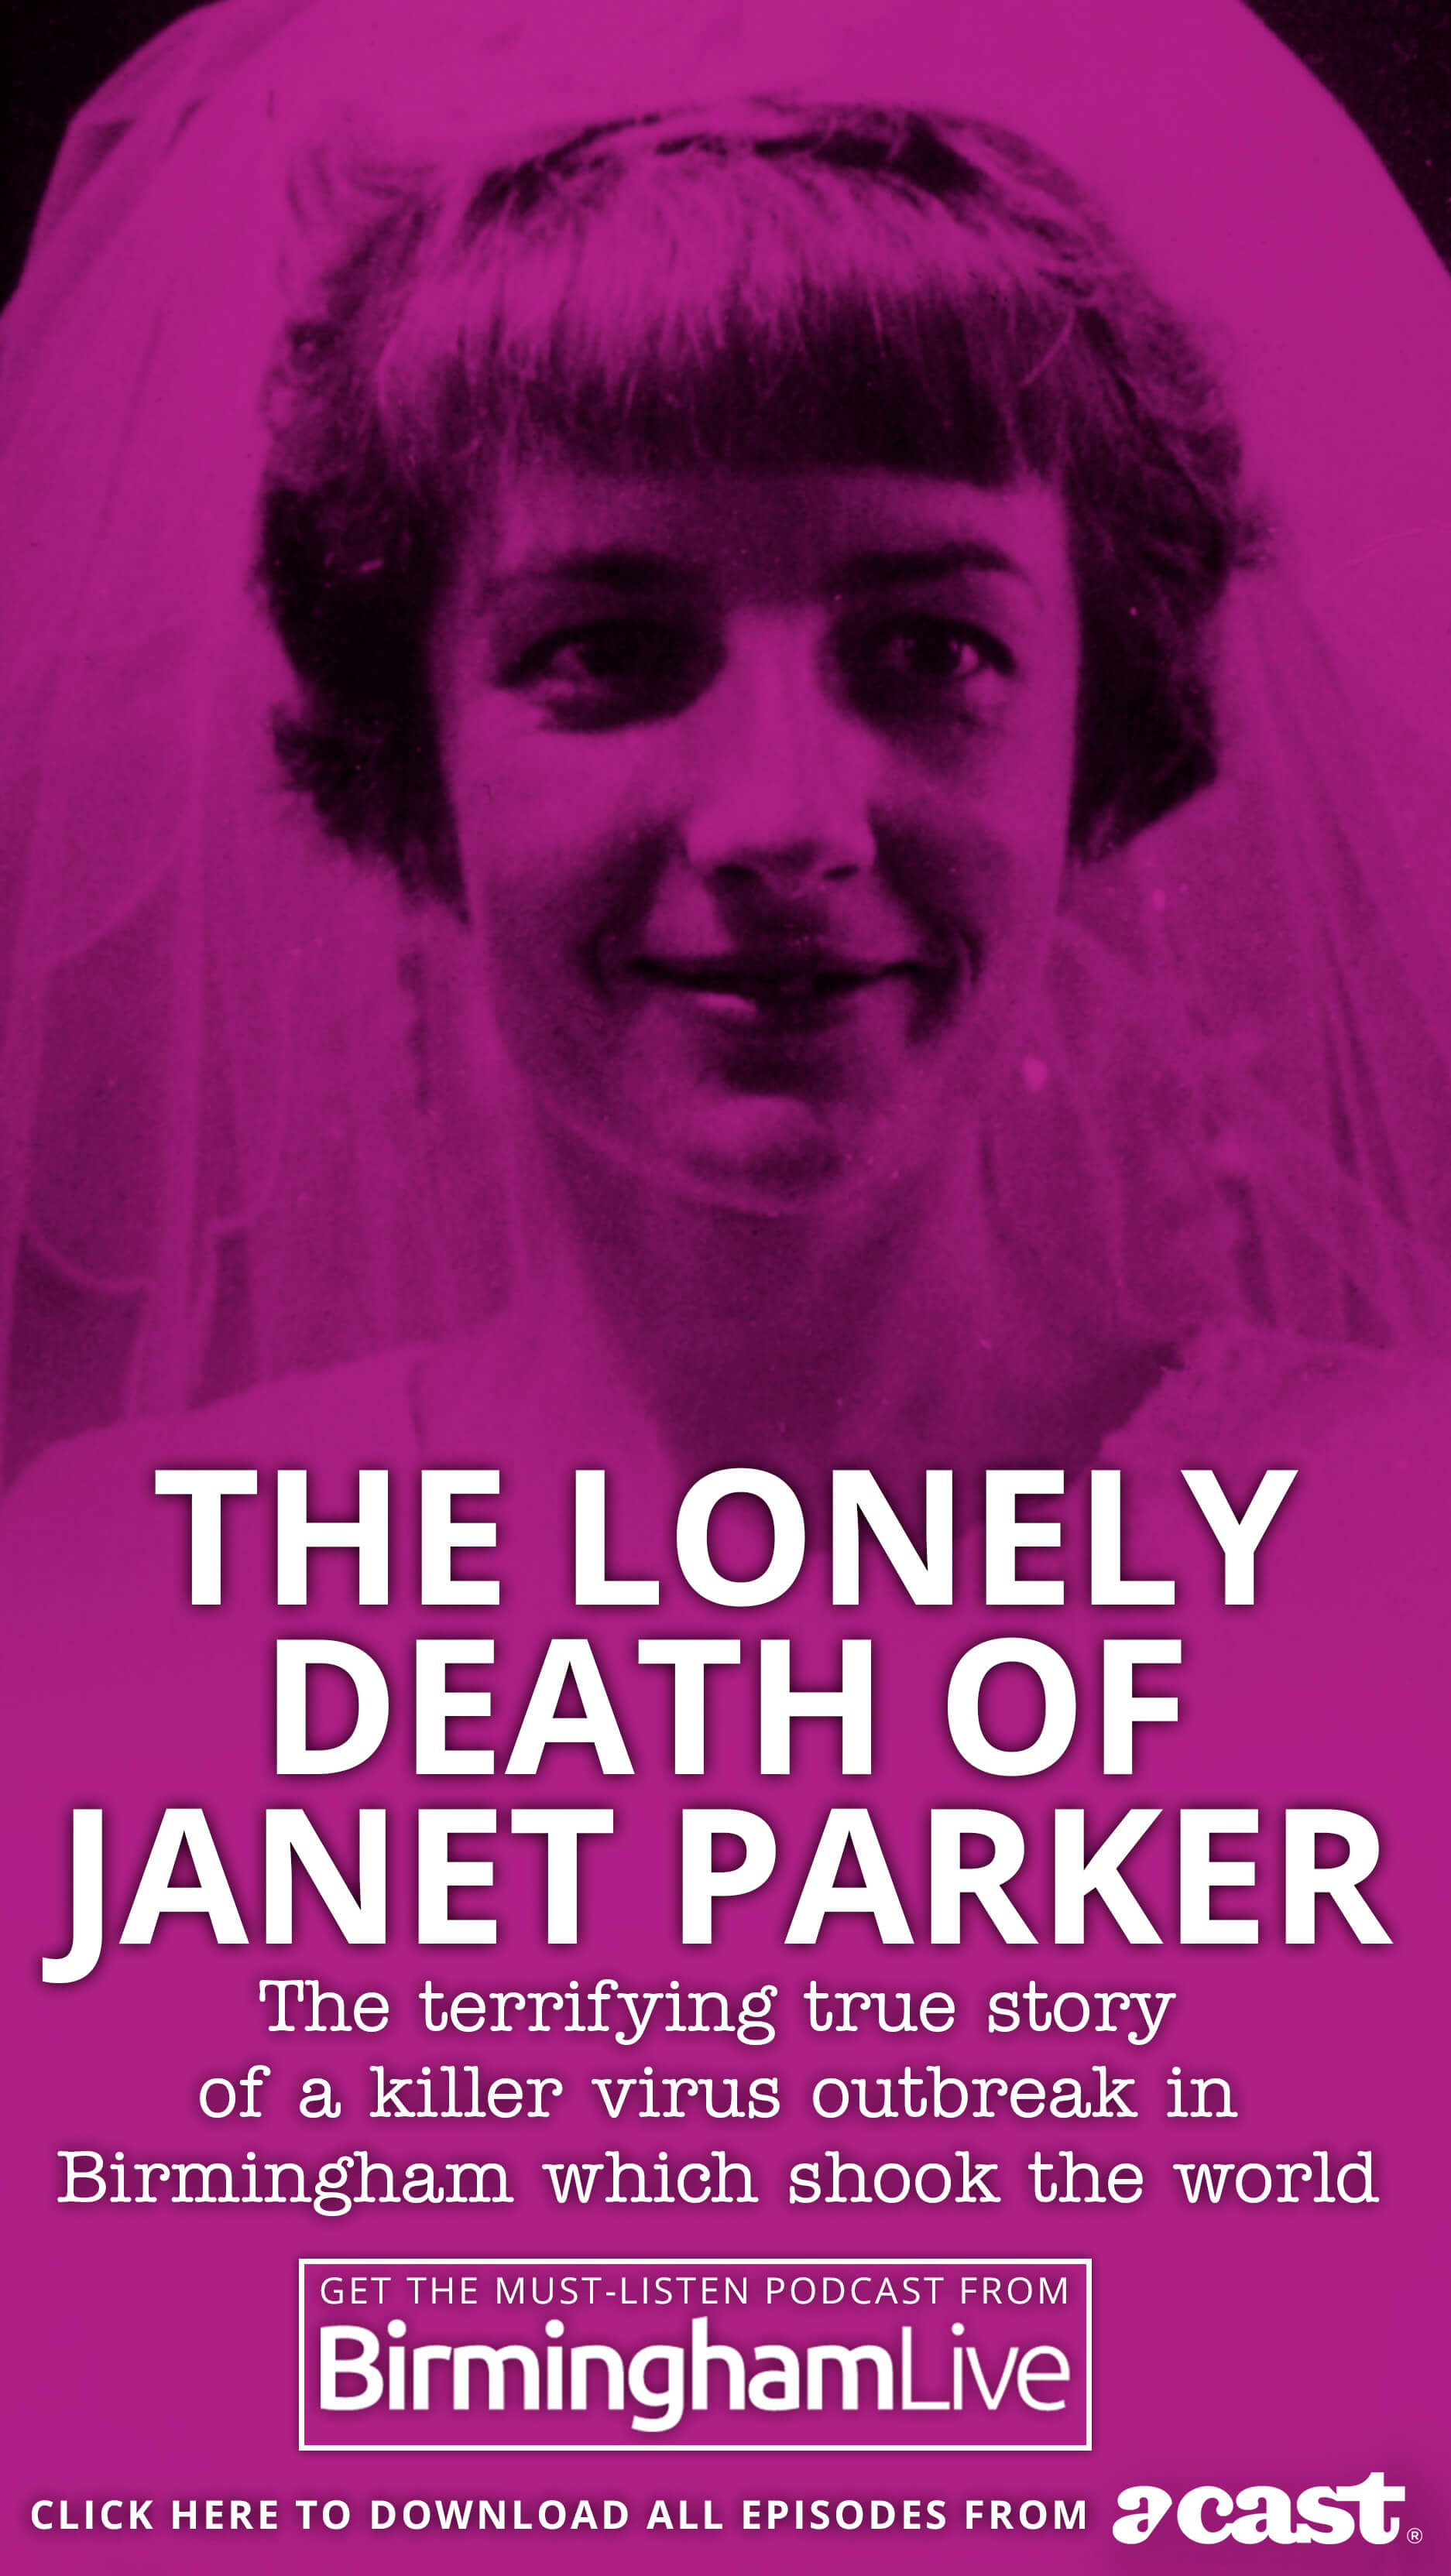 The Lonely Death of Janet Parker